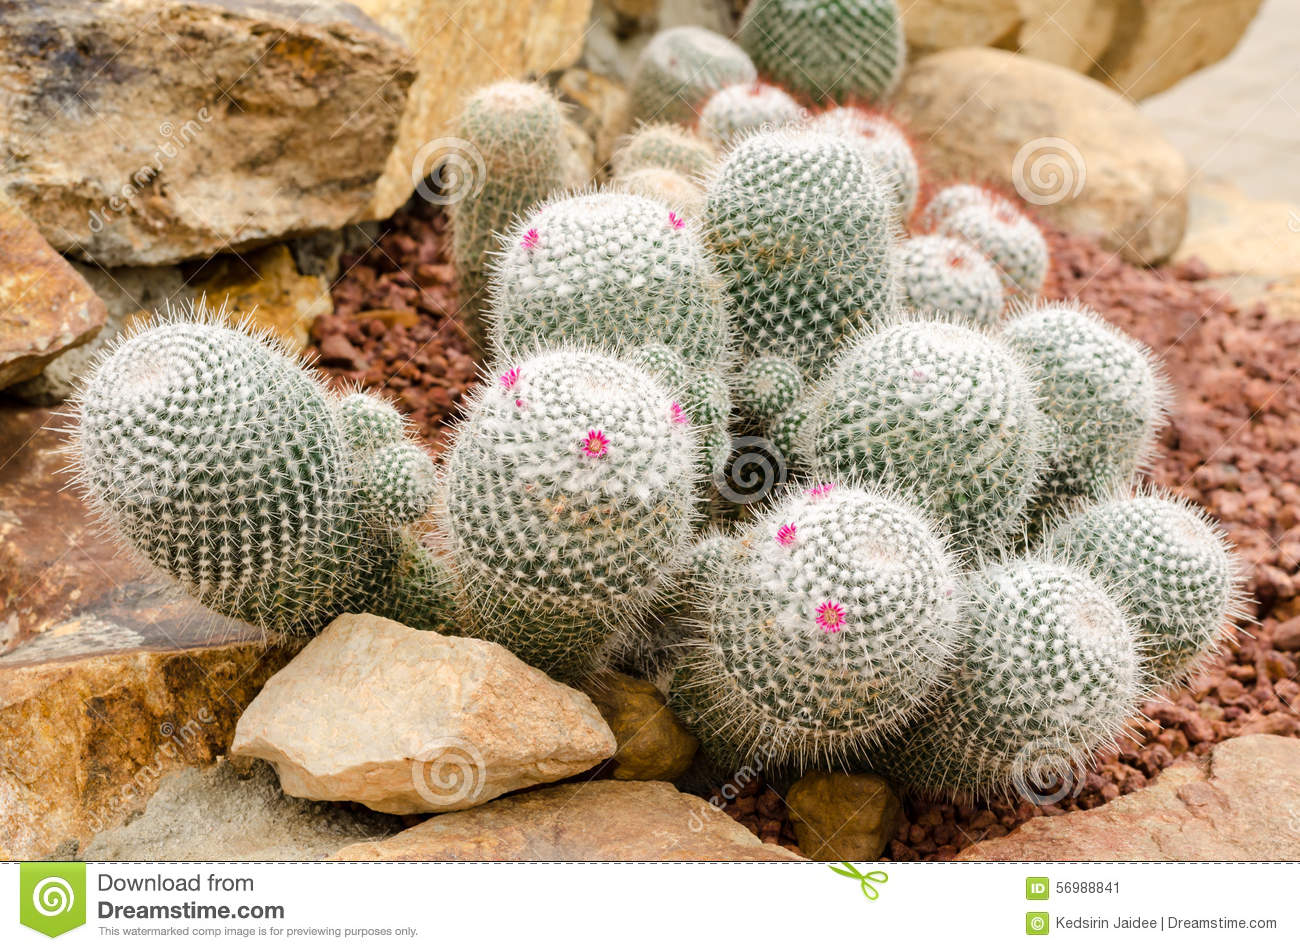 The Cactus Shop - Mammillaria to Myrtillocactus